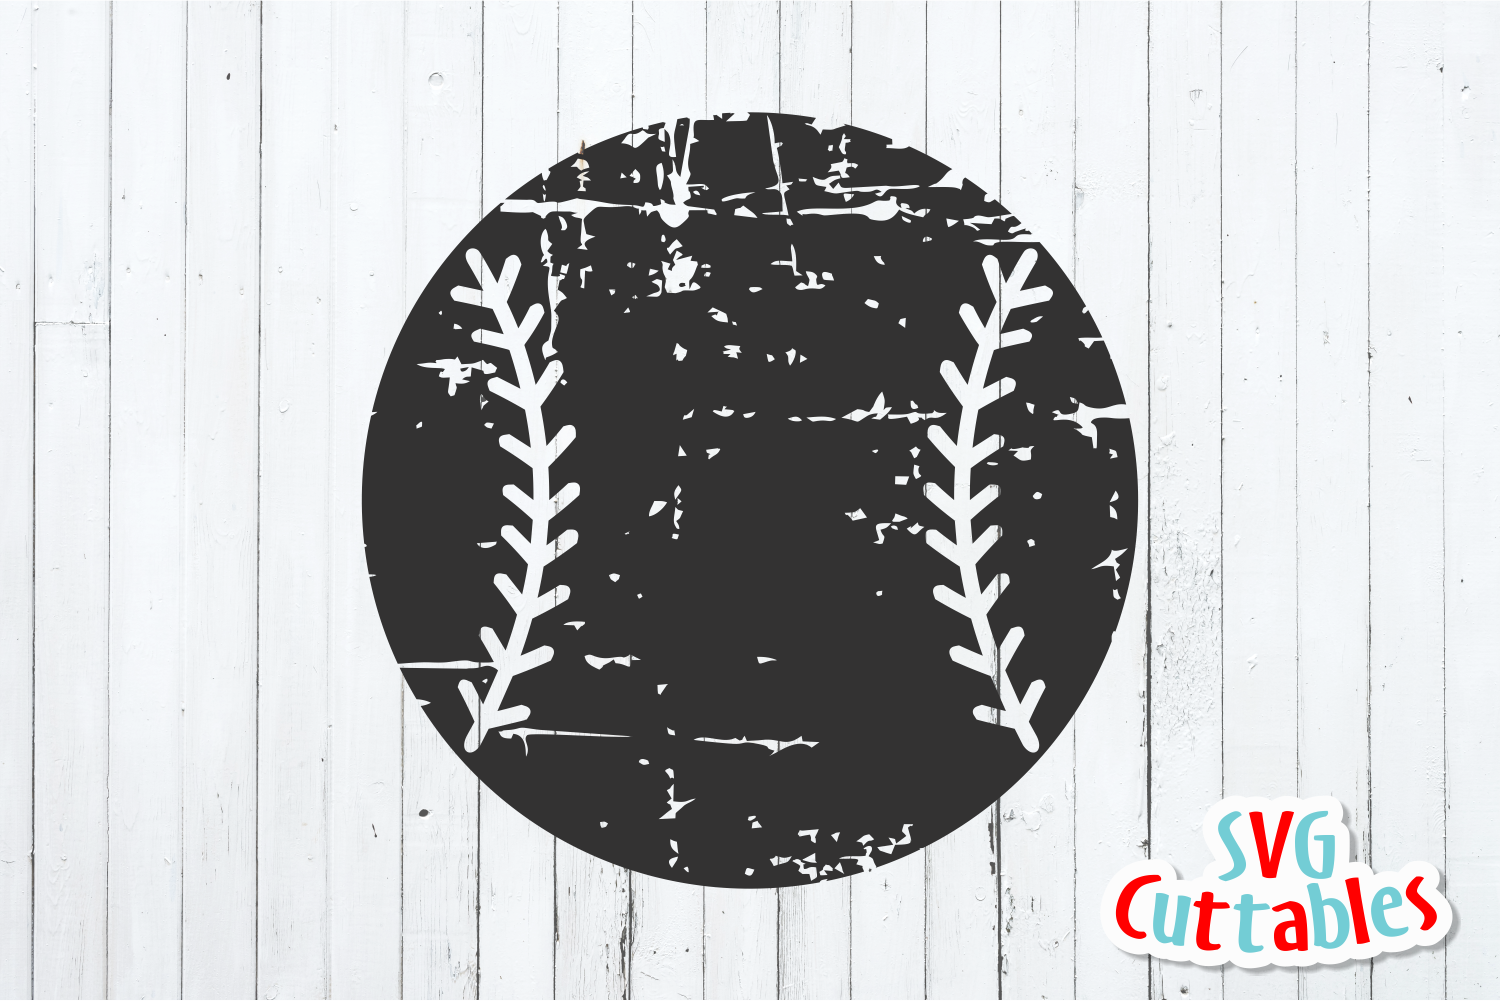 Distressedbaseball clipart freeuse download Distressed Baseball Distressed Softball freeuse download